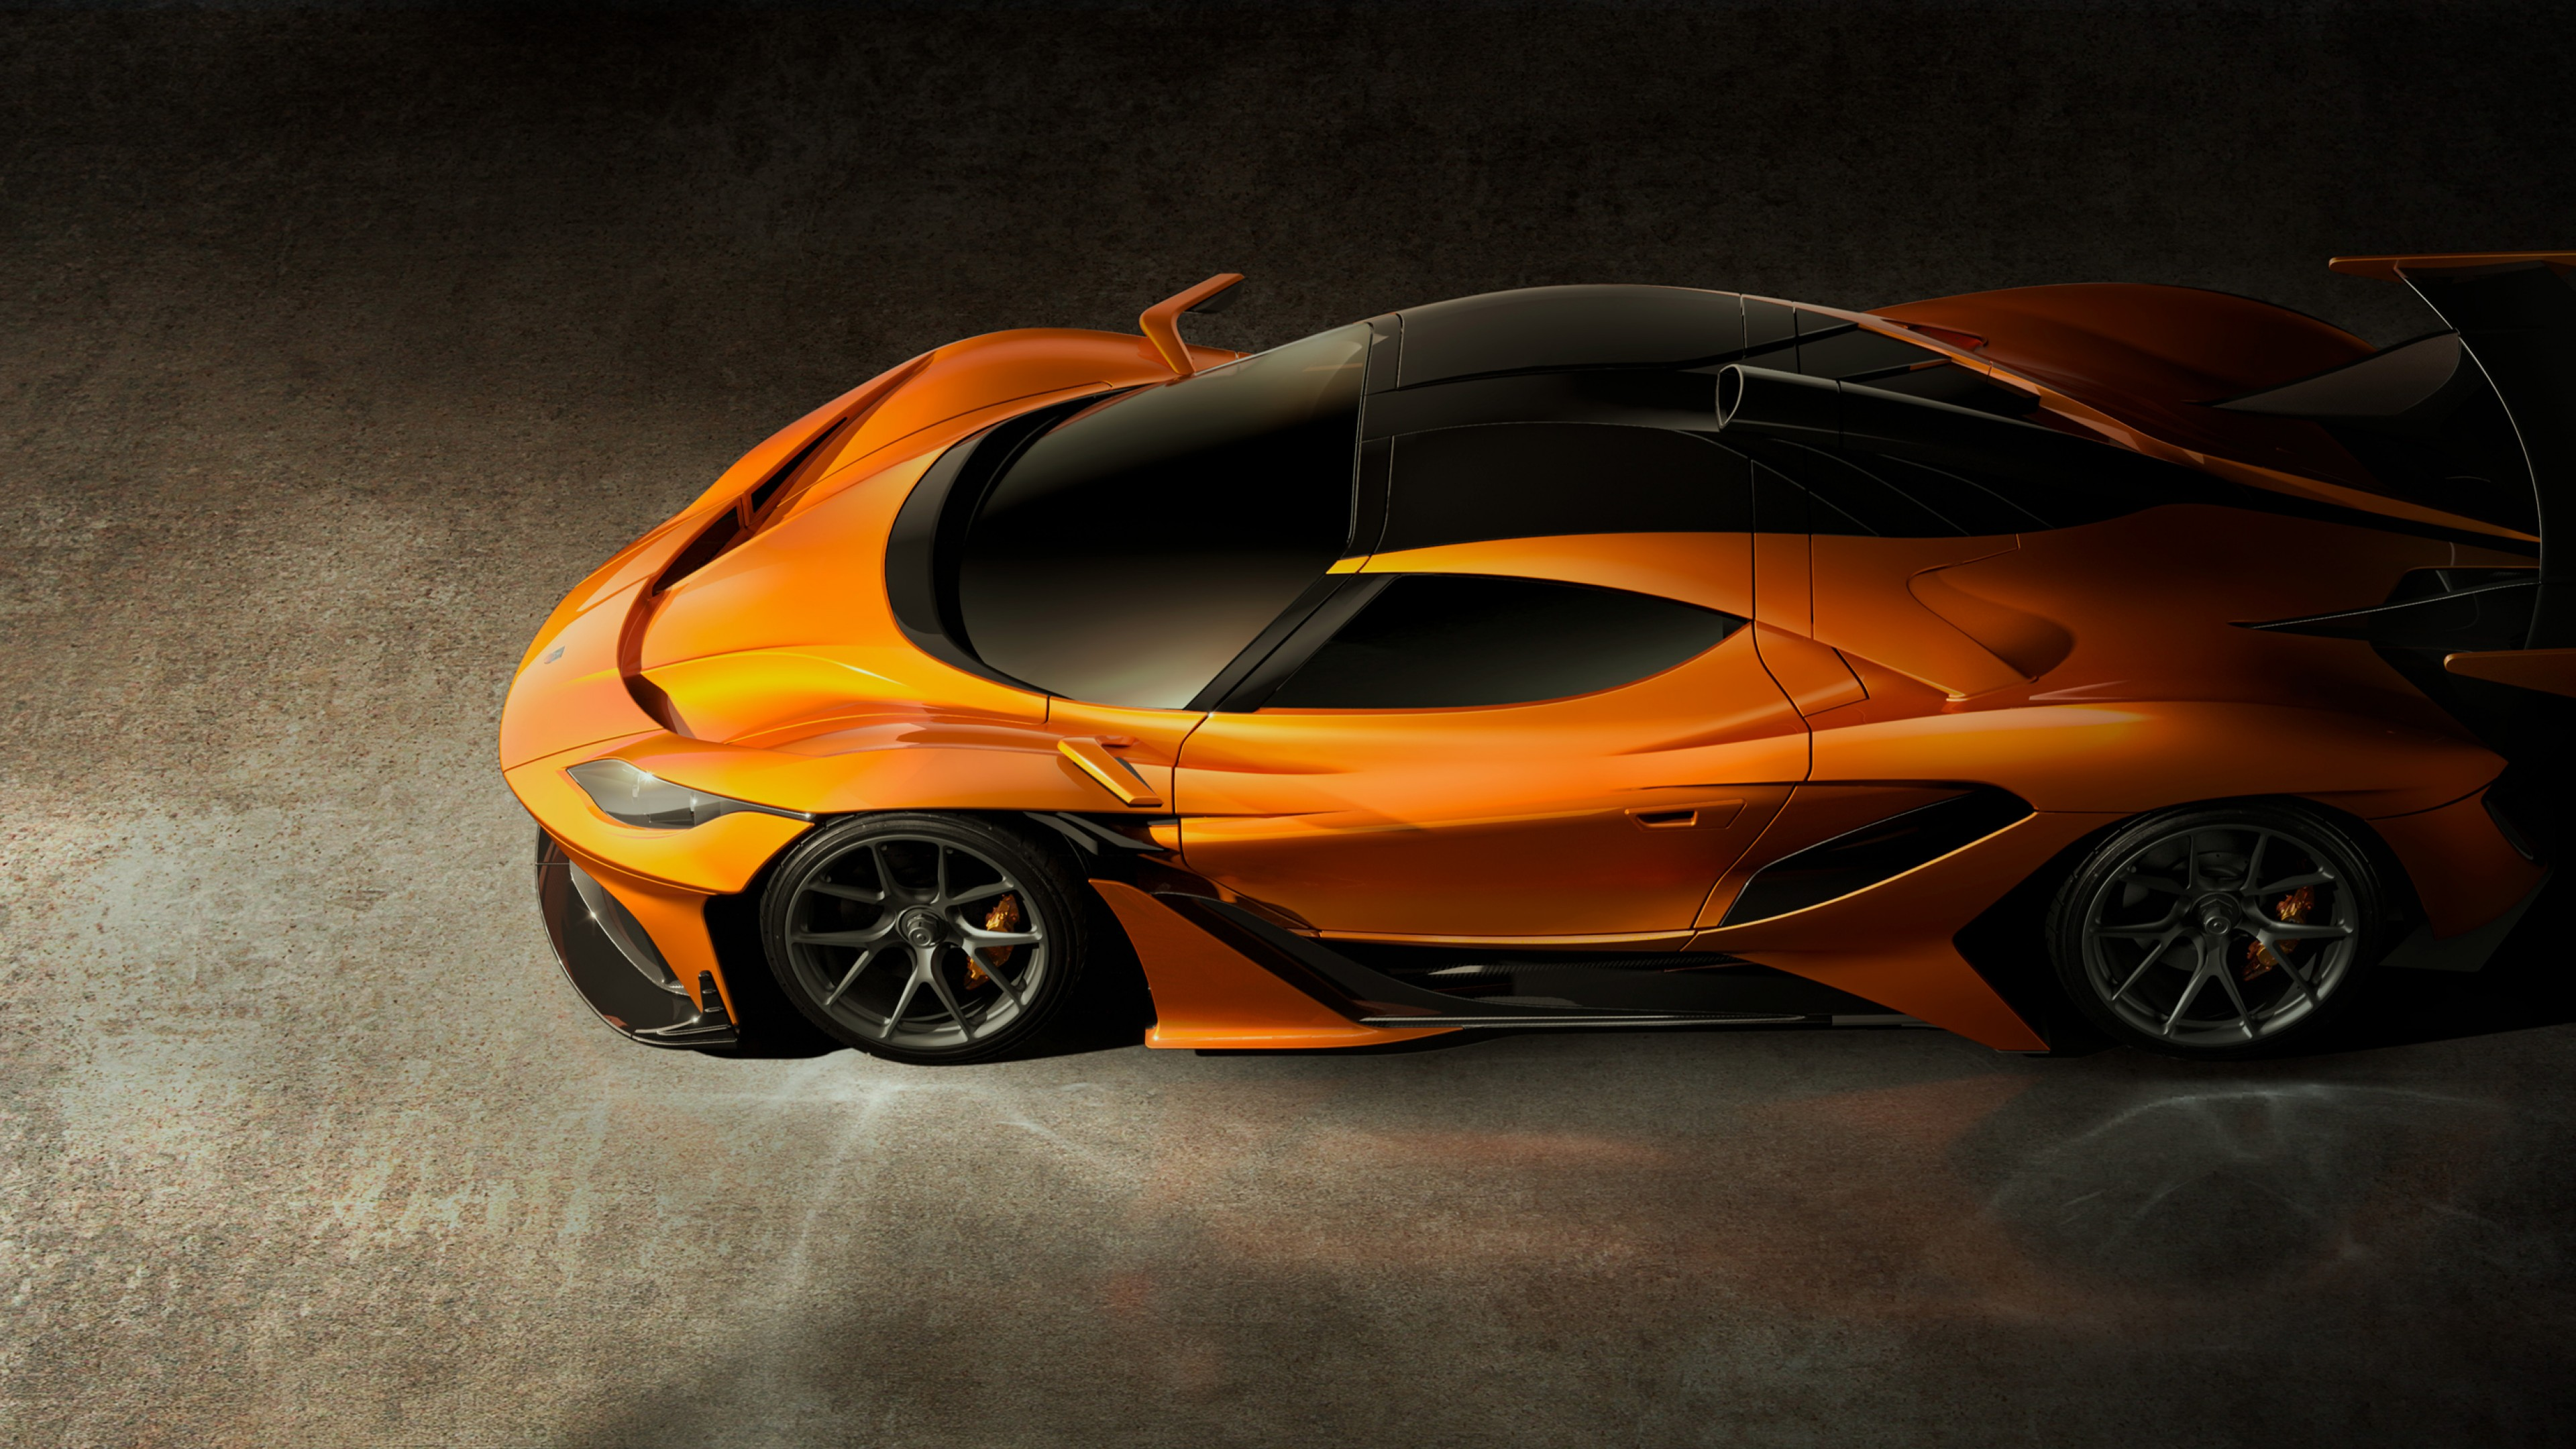 wallpaper apollo arrow geneva auto show  supercar hypercar speed orange cars bikes